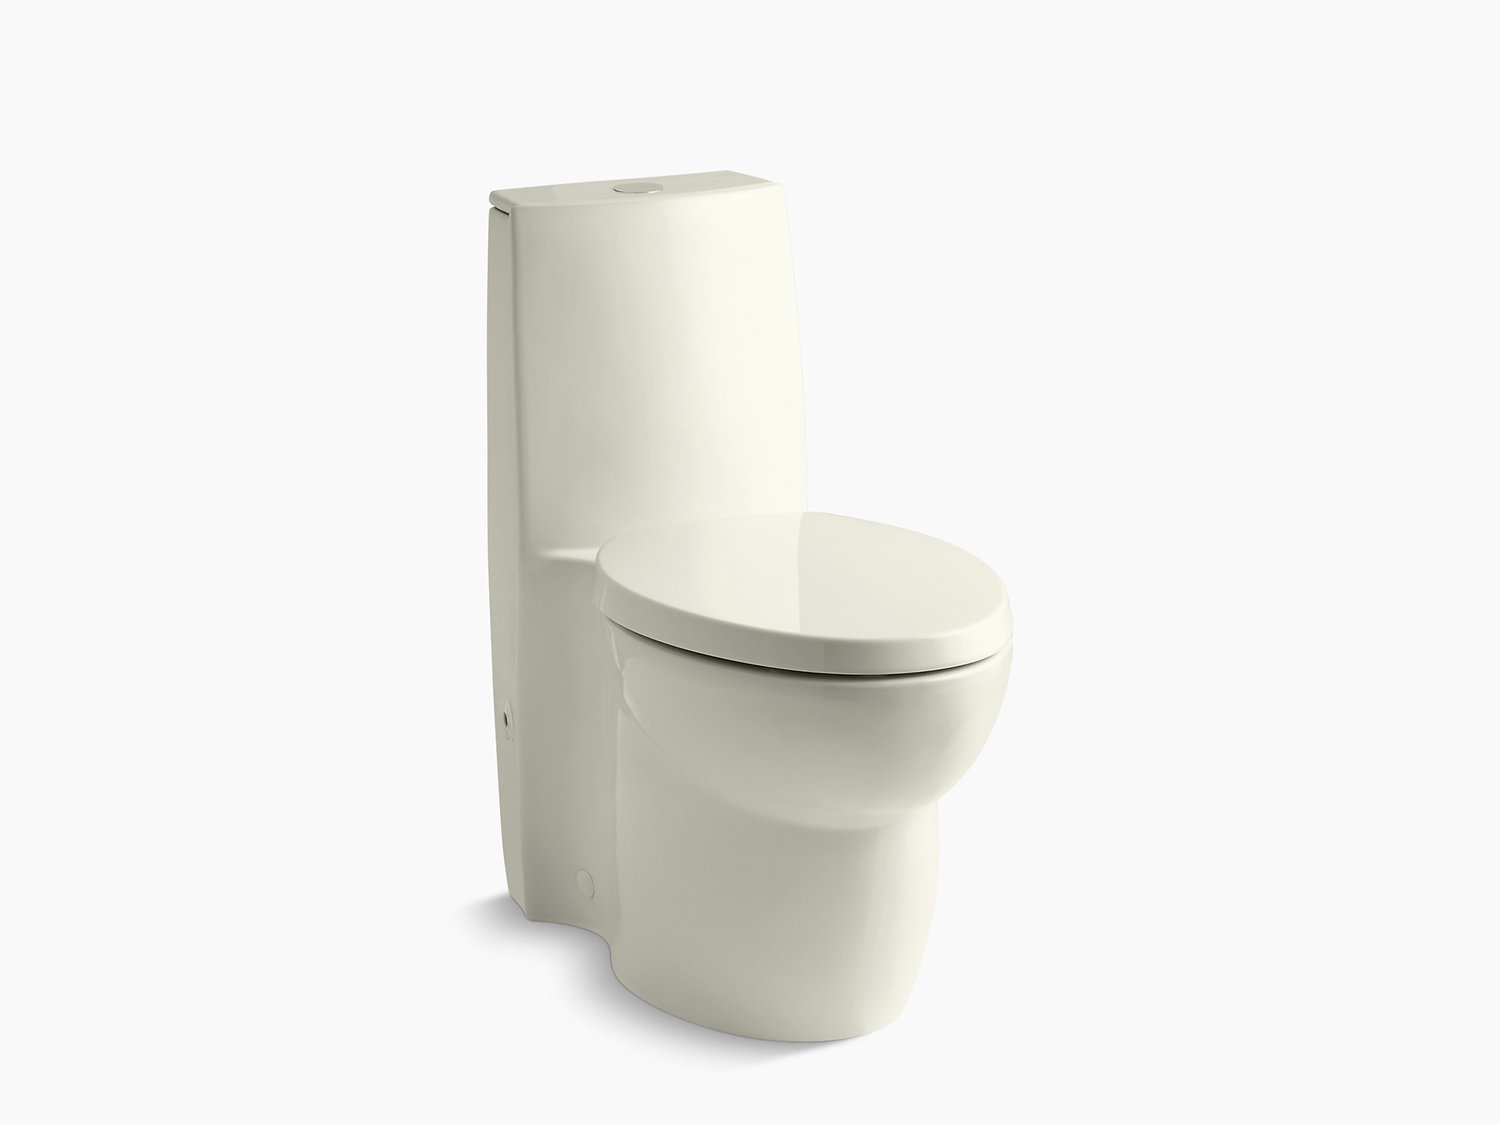 Biscuit Skirted One-piece Elongated Dual-flush Toilet With Top Actuator and Saile Quiet-close Toilet Seat With Quick-release Functionality